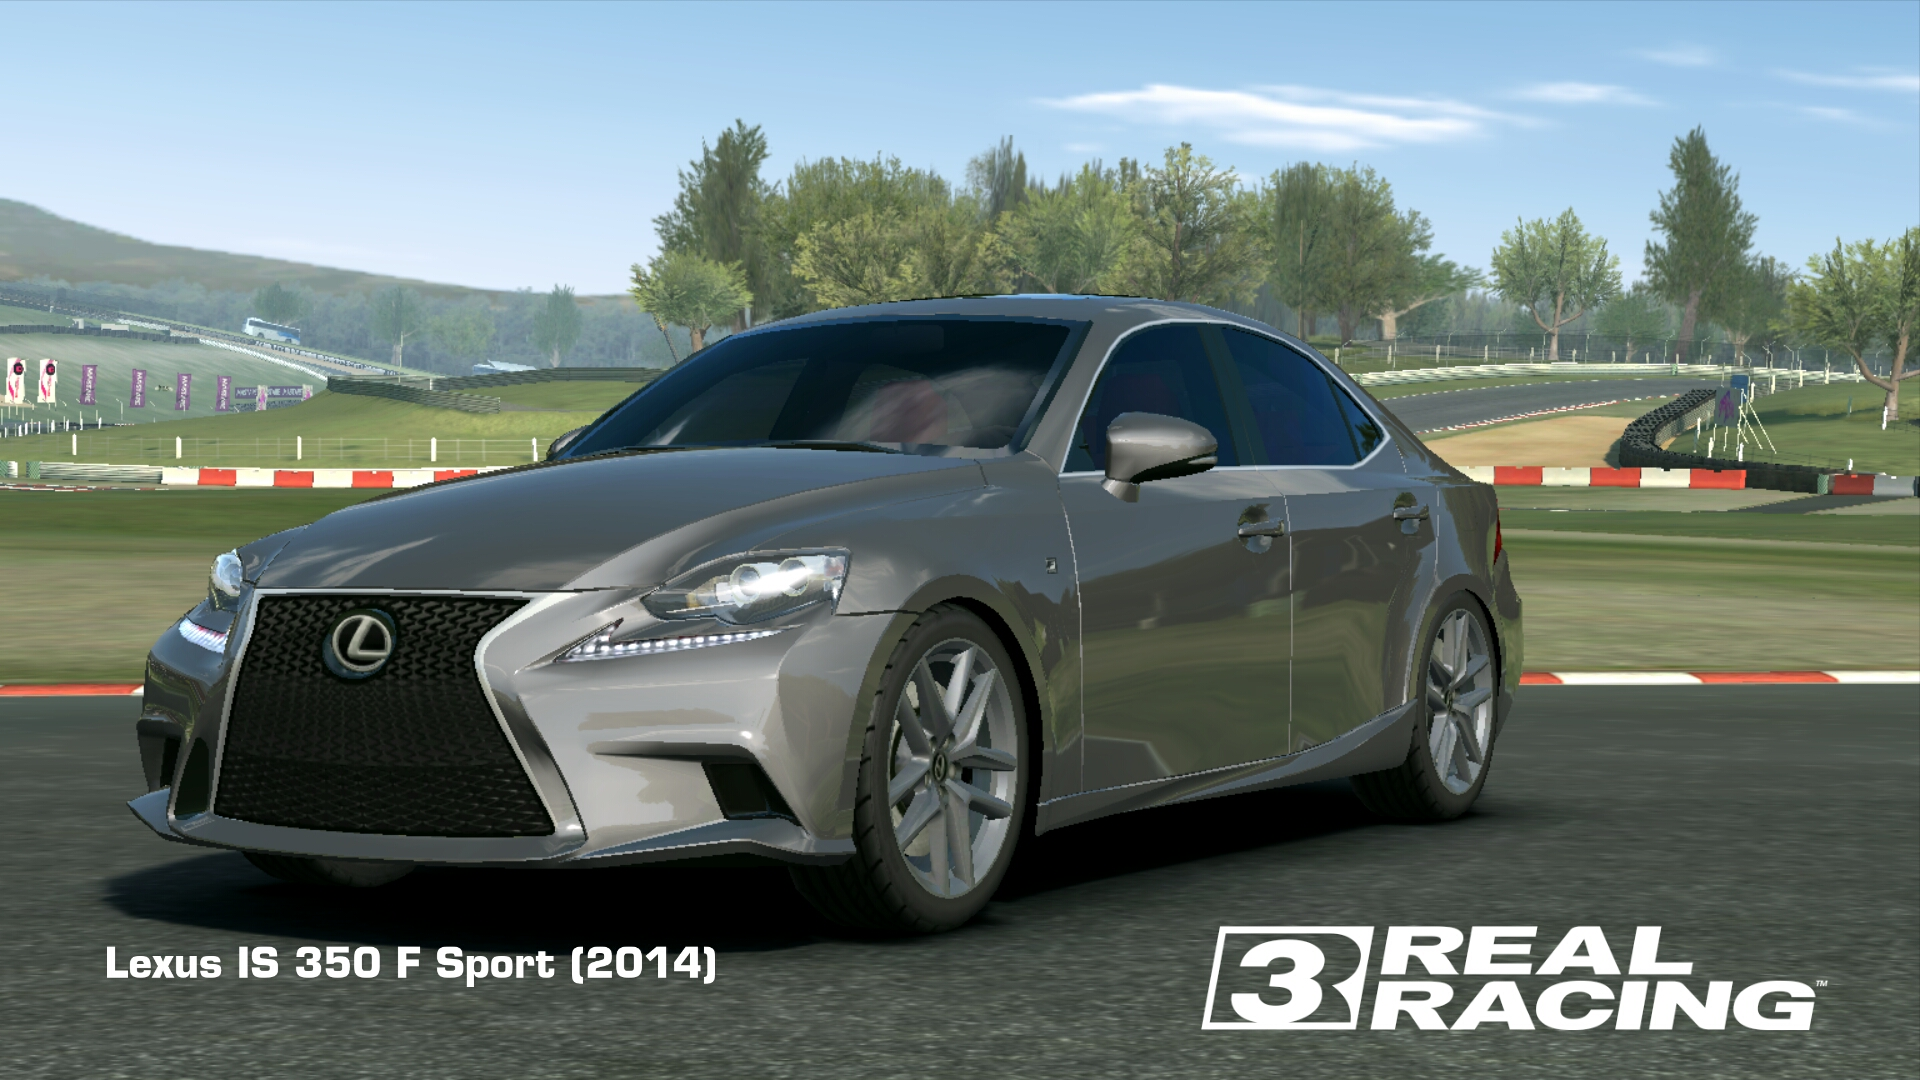 Showcase Lexus IS 350 F Sport (2014)